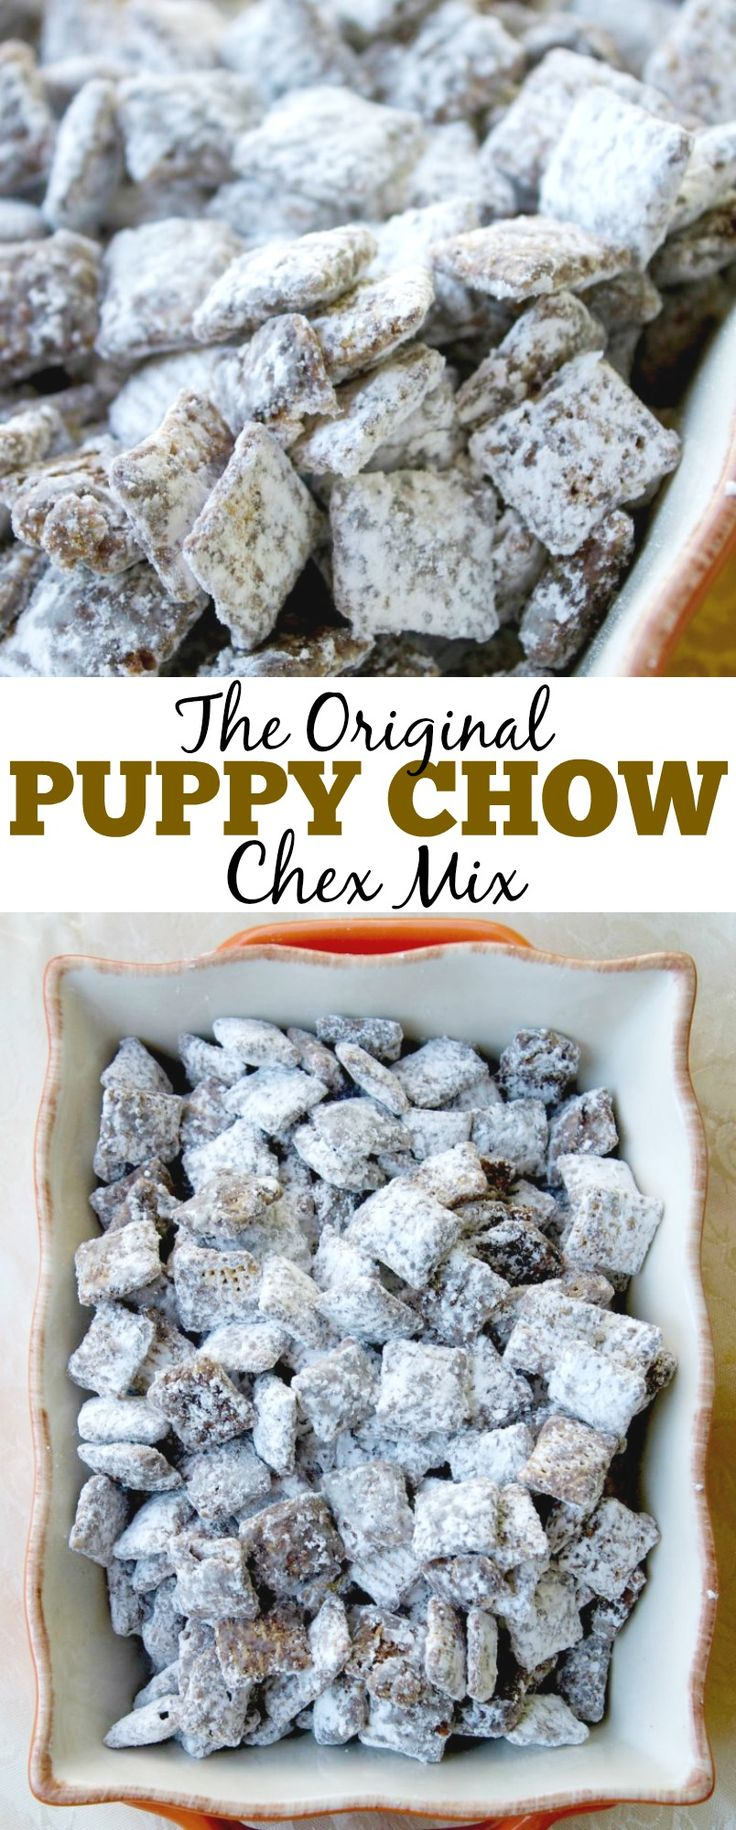 The Original Puppy Chow Chex Mix Recipe. This is our favorite chocolate treat to make. It's a great sweet or dessert for any occasion. These are also called muddy buddies!  via @mellisaswigart (Chex Mix)